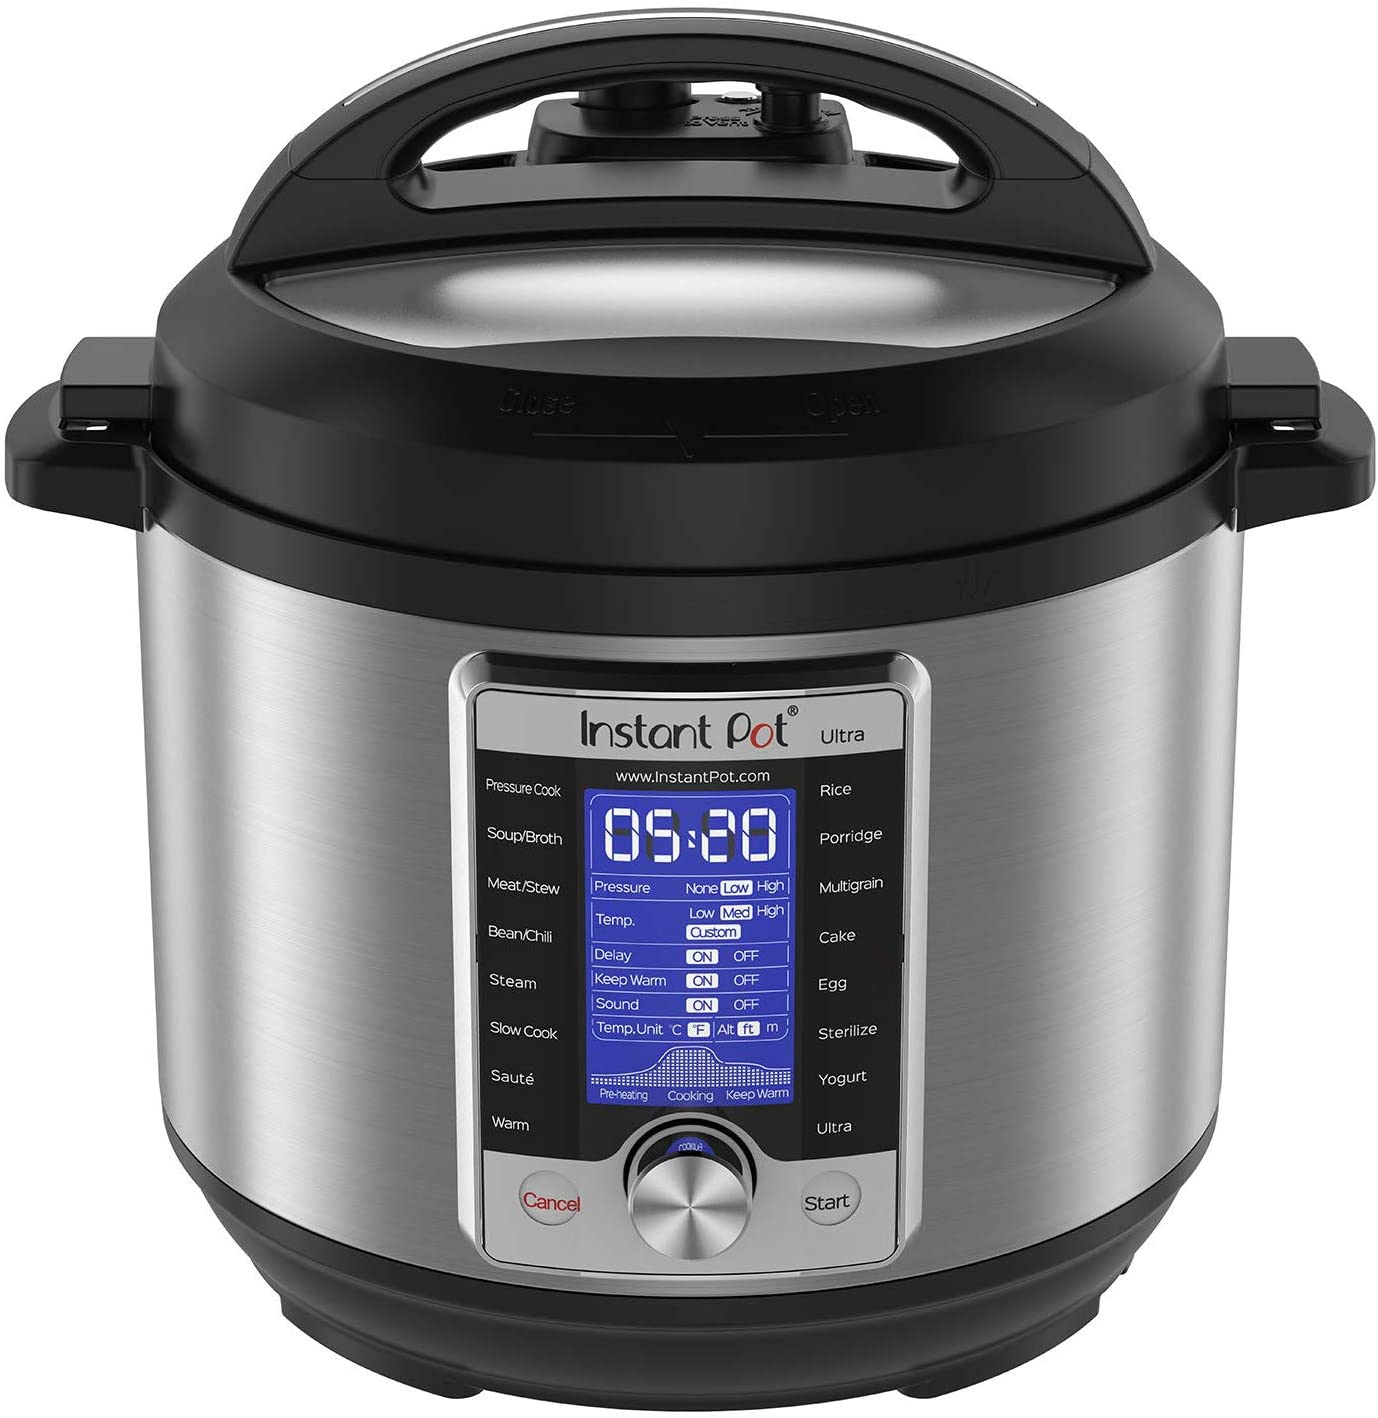 instant-pot-ultra-electric-pressure-cooker-6-quart-10-in-1-stainless-steel-2021-2-28